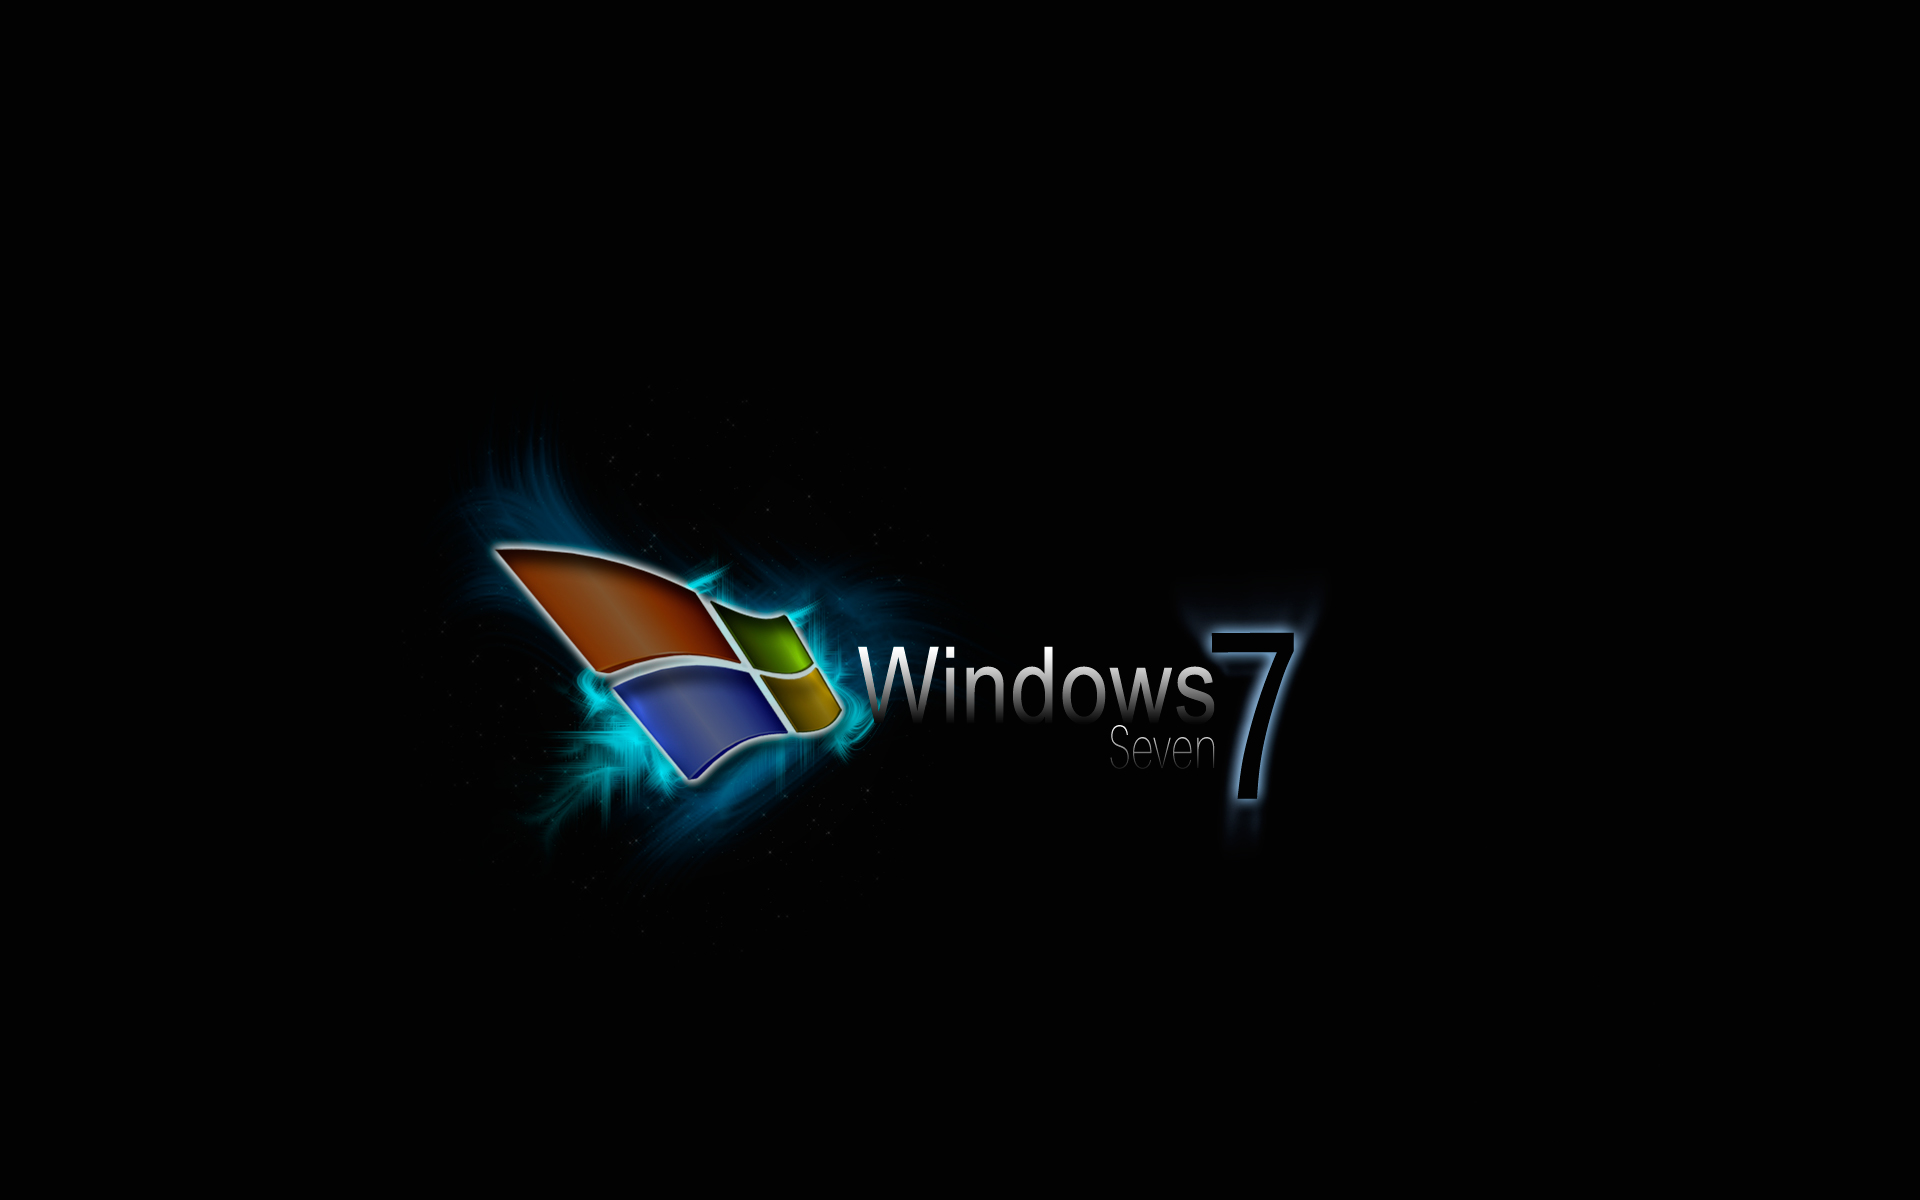 Windows wallpaper wallpapers images nice 1920x1200